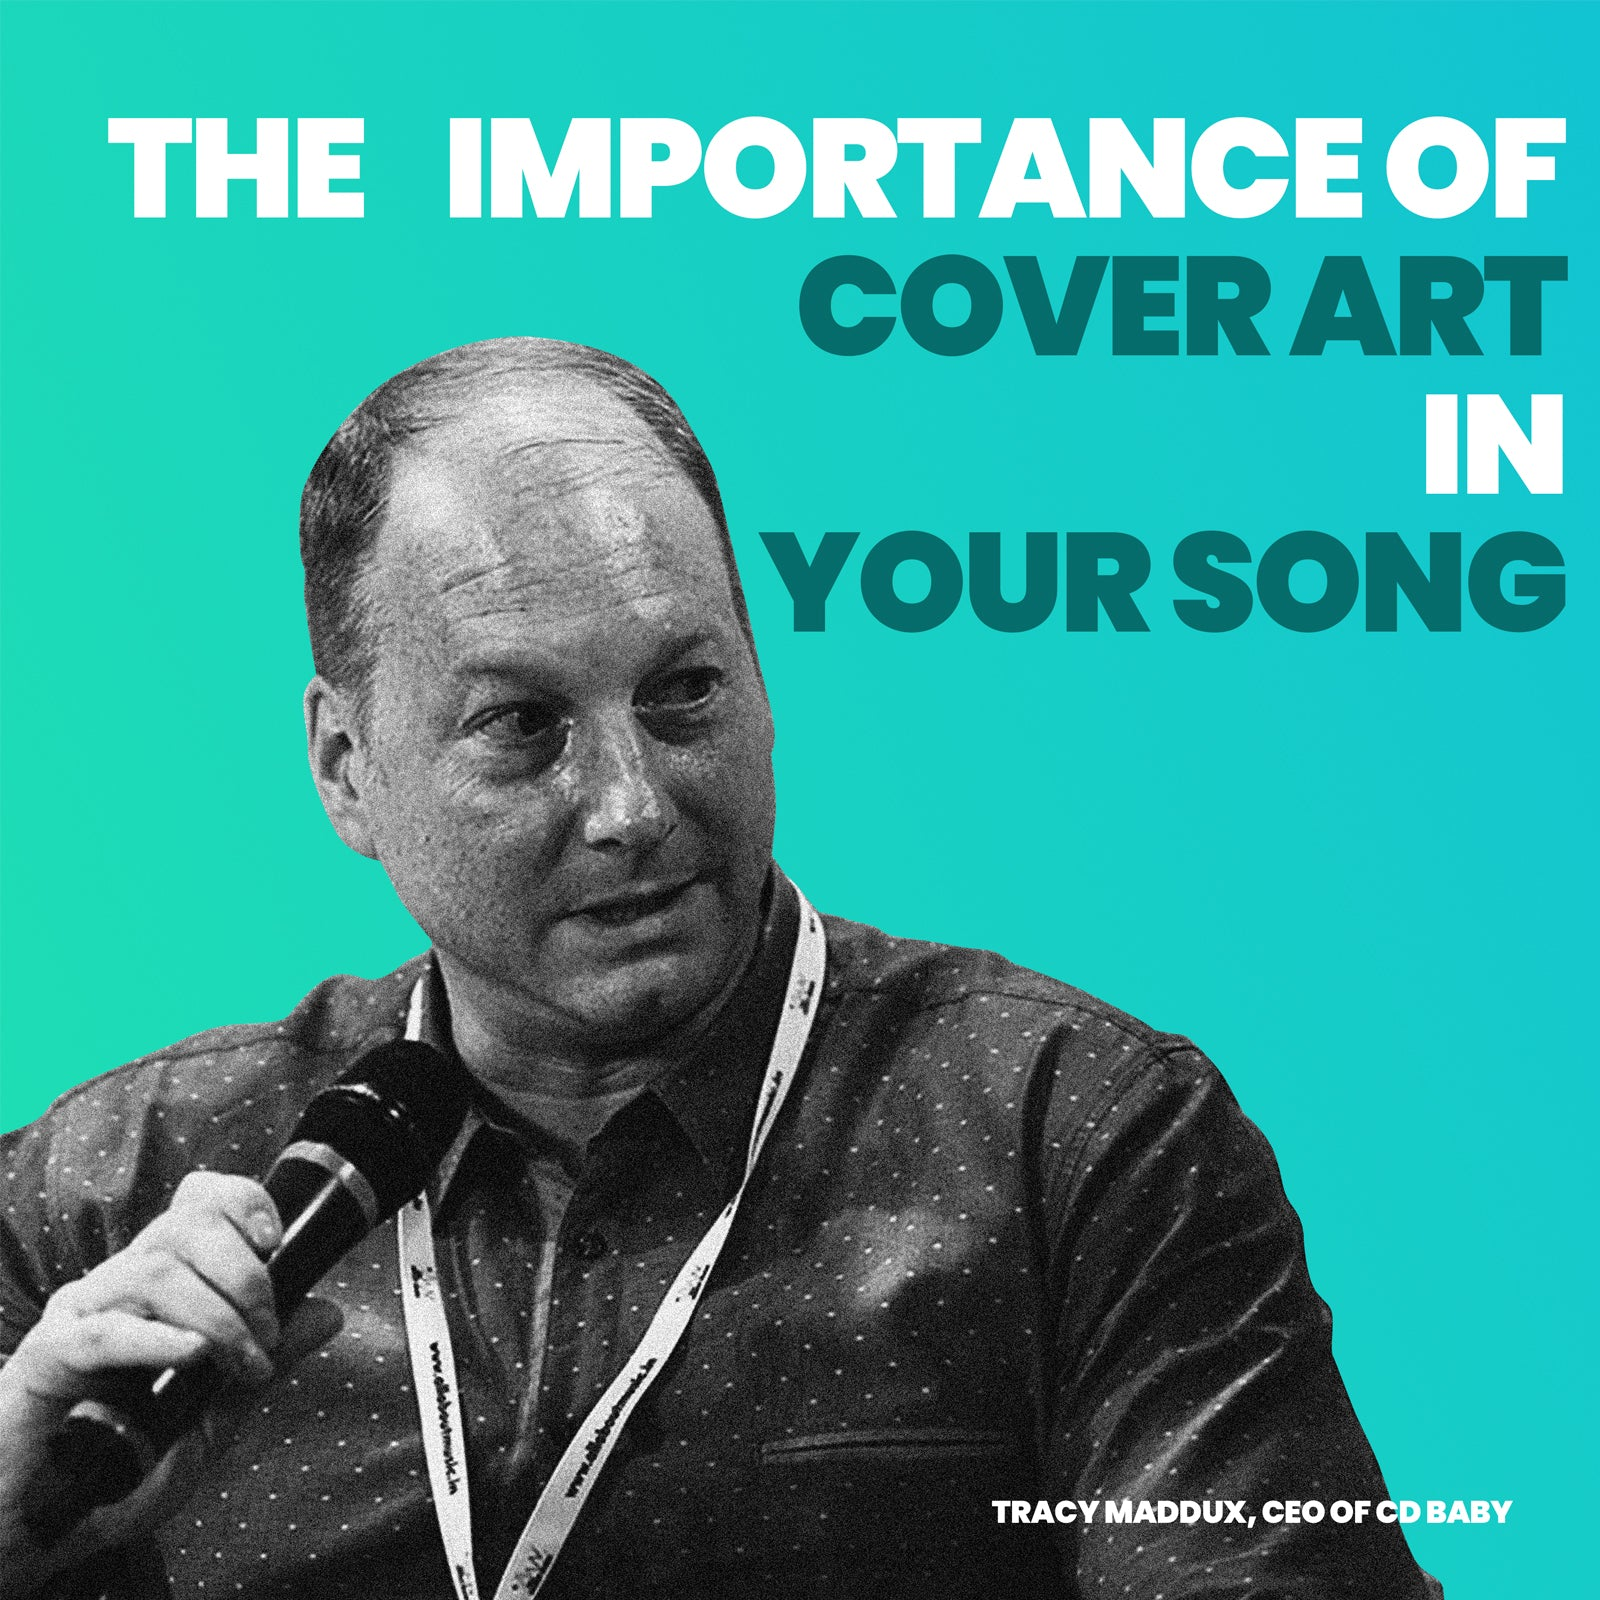 The importance of cover art in your song.